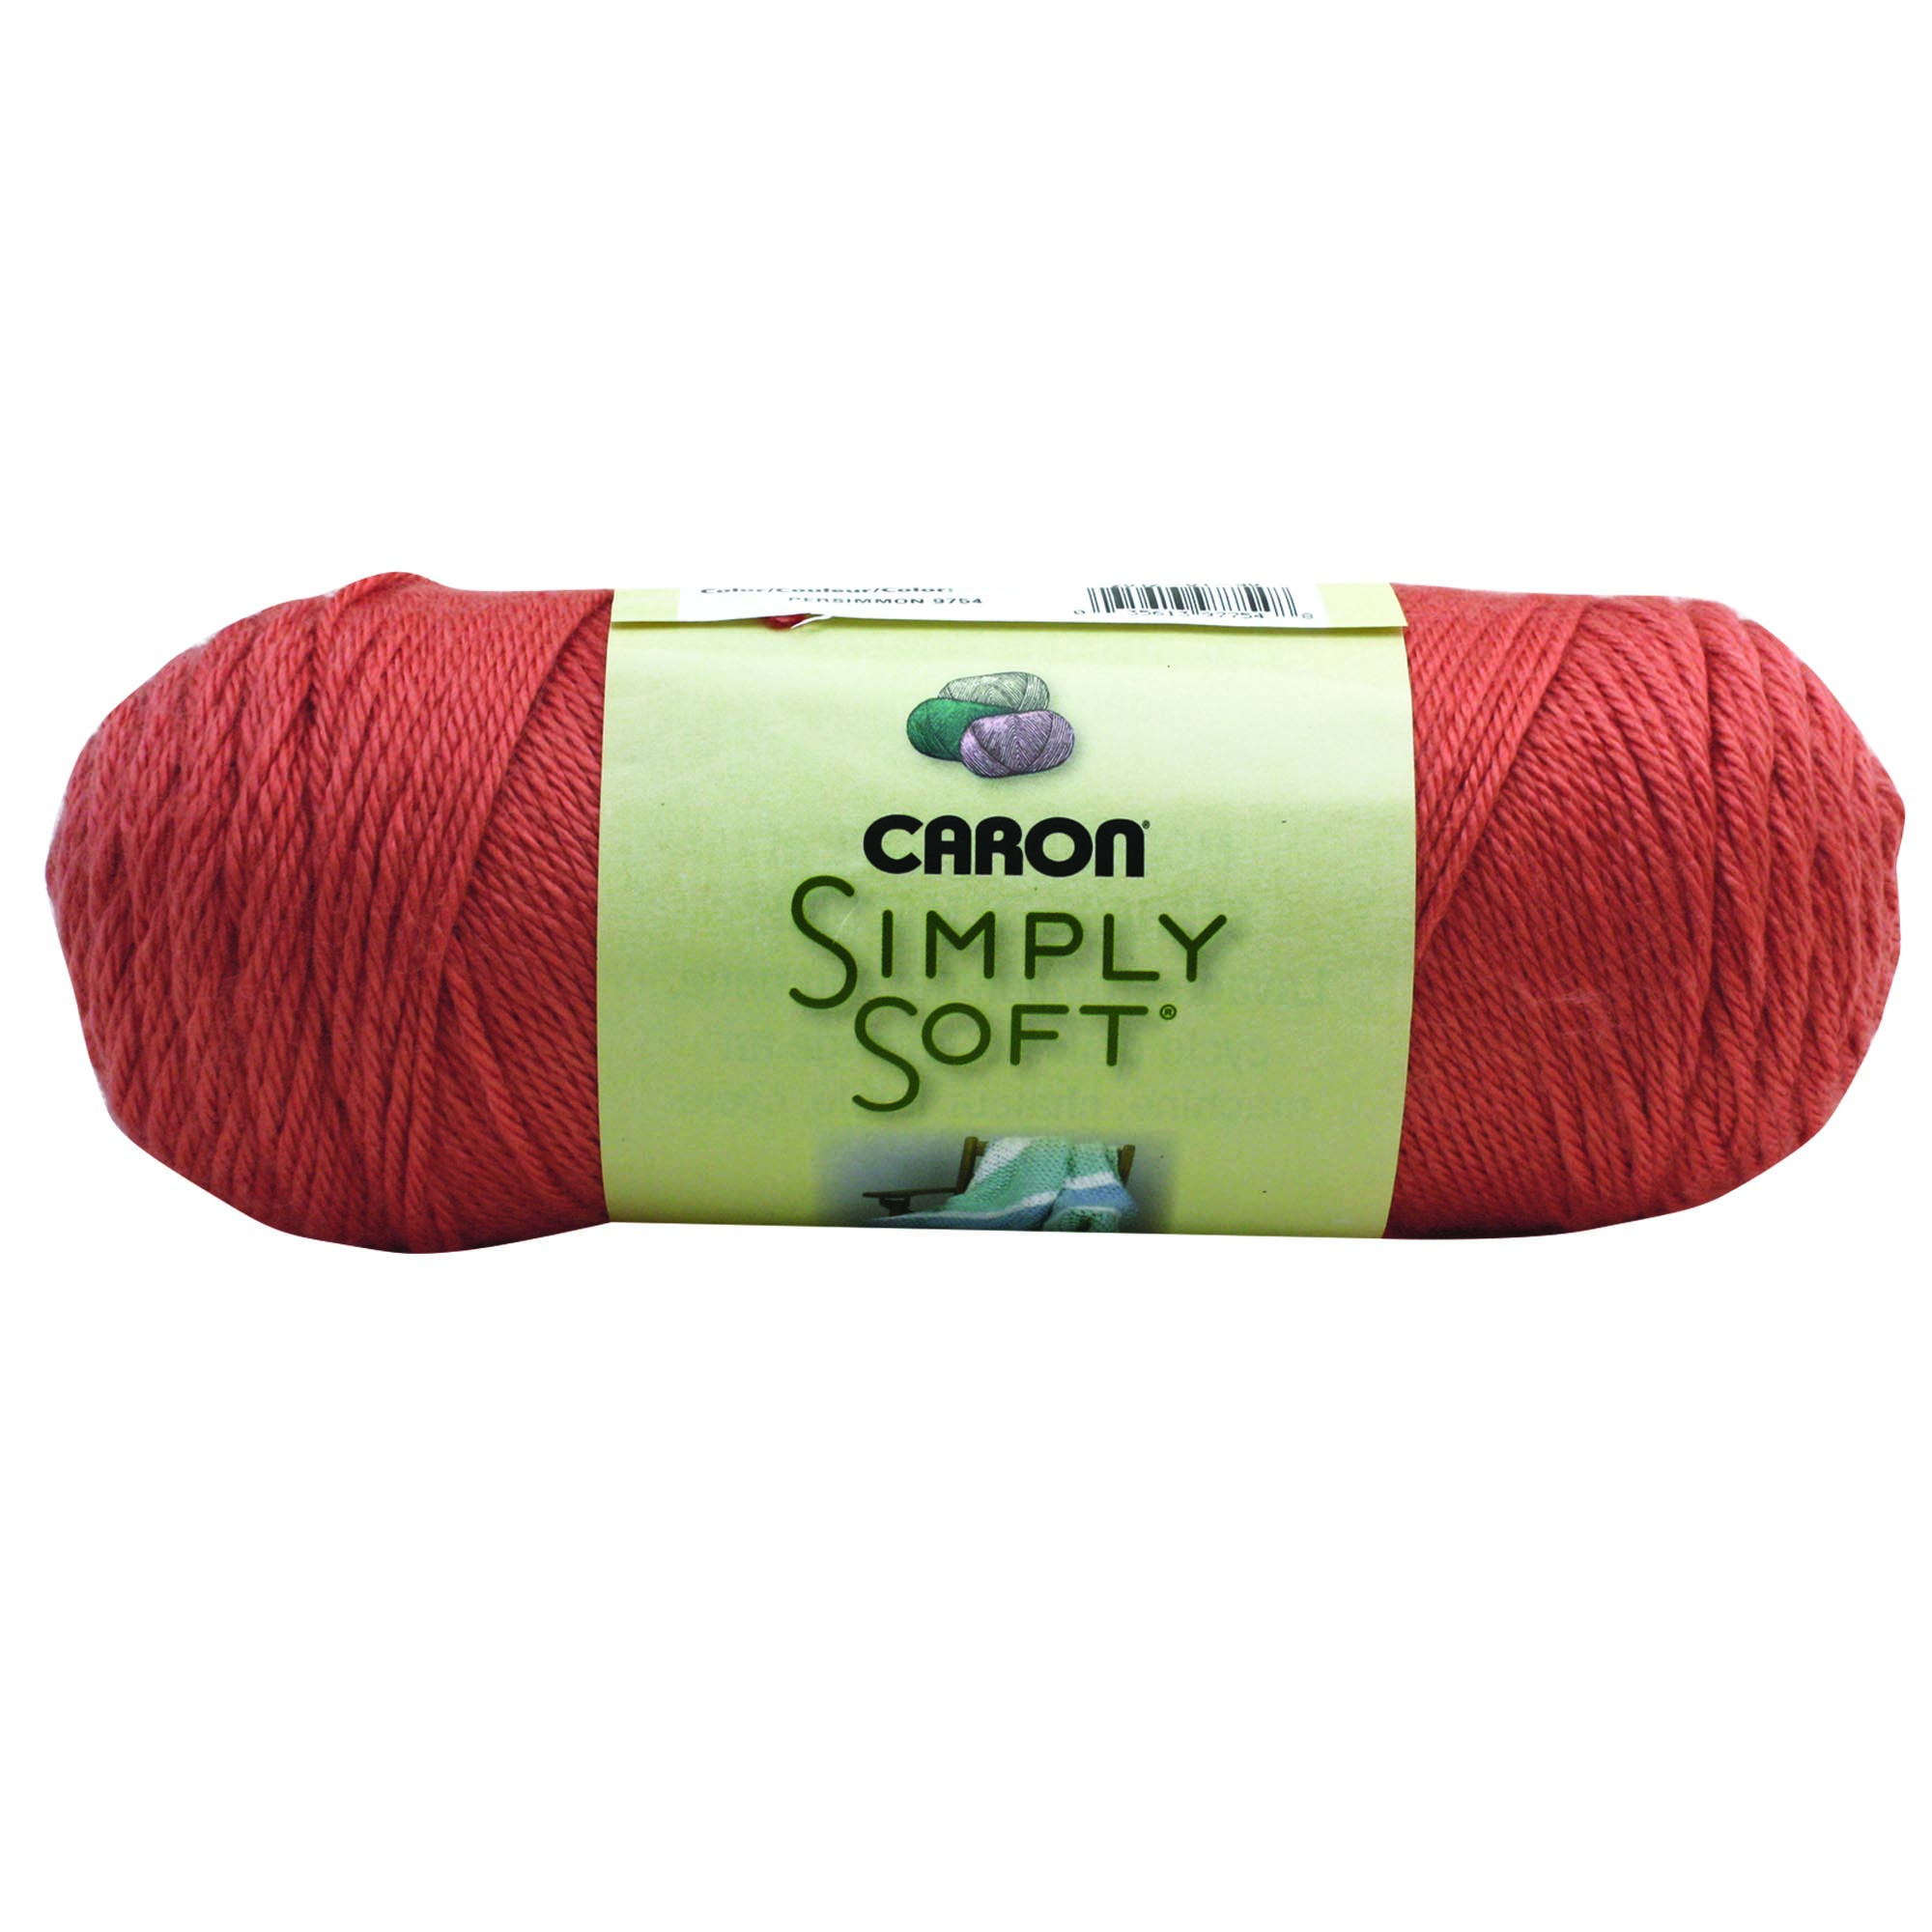 Caron Simply Soft Persimmon 3-6Oz